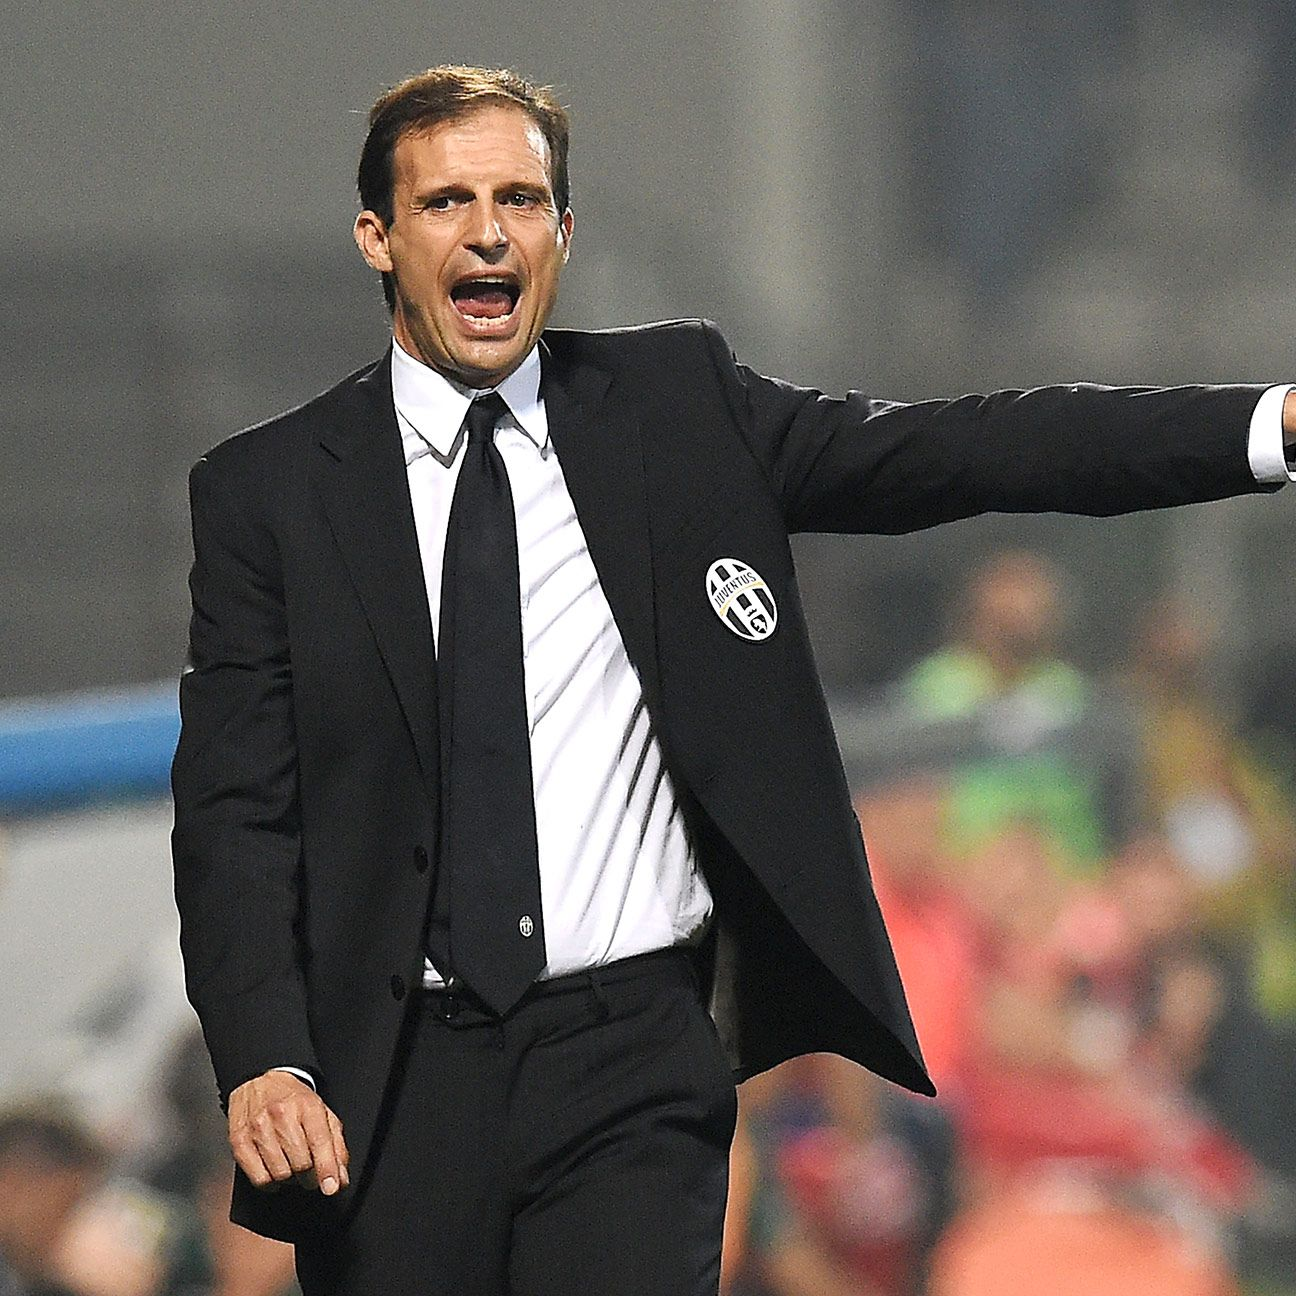 Juventus supporters will be eager to see whether head coach Massimiliano Allegri continues to deploy the 4-3-1-2 used against Olympiakos.